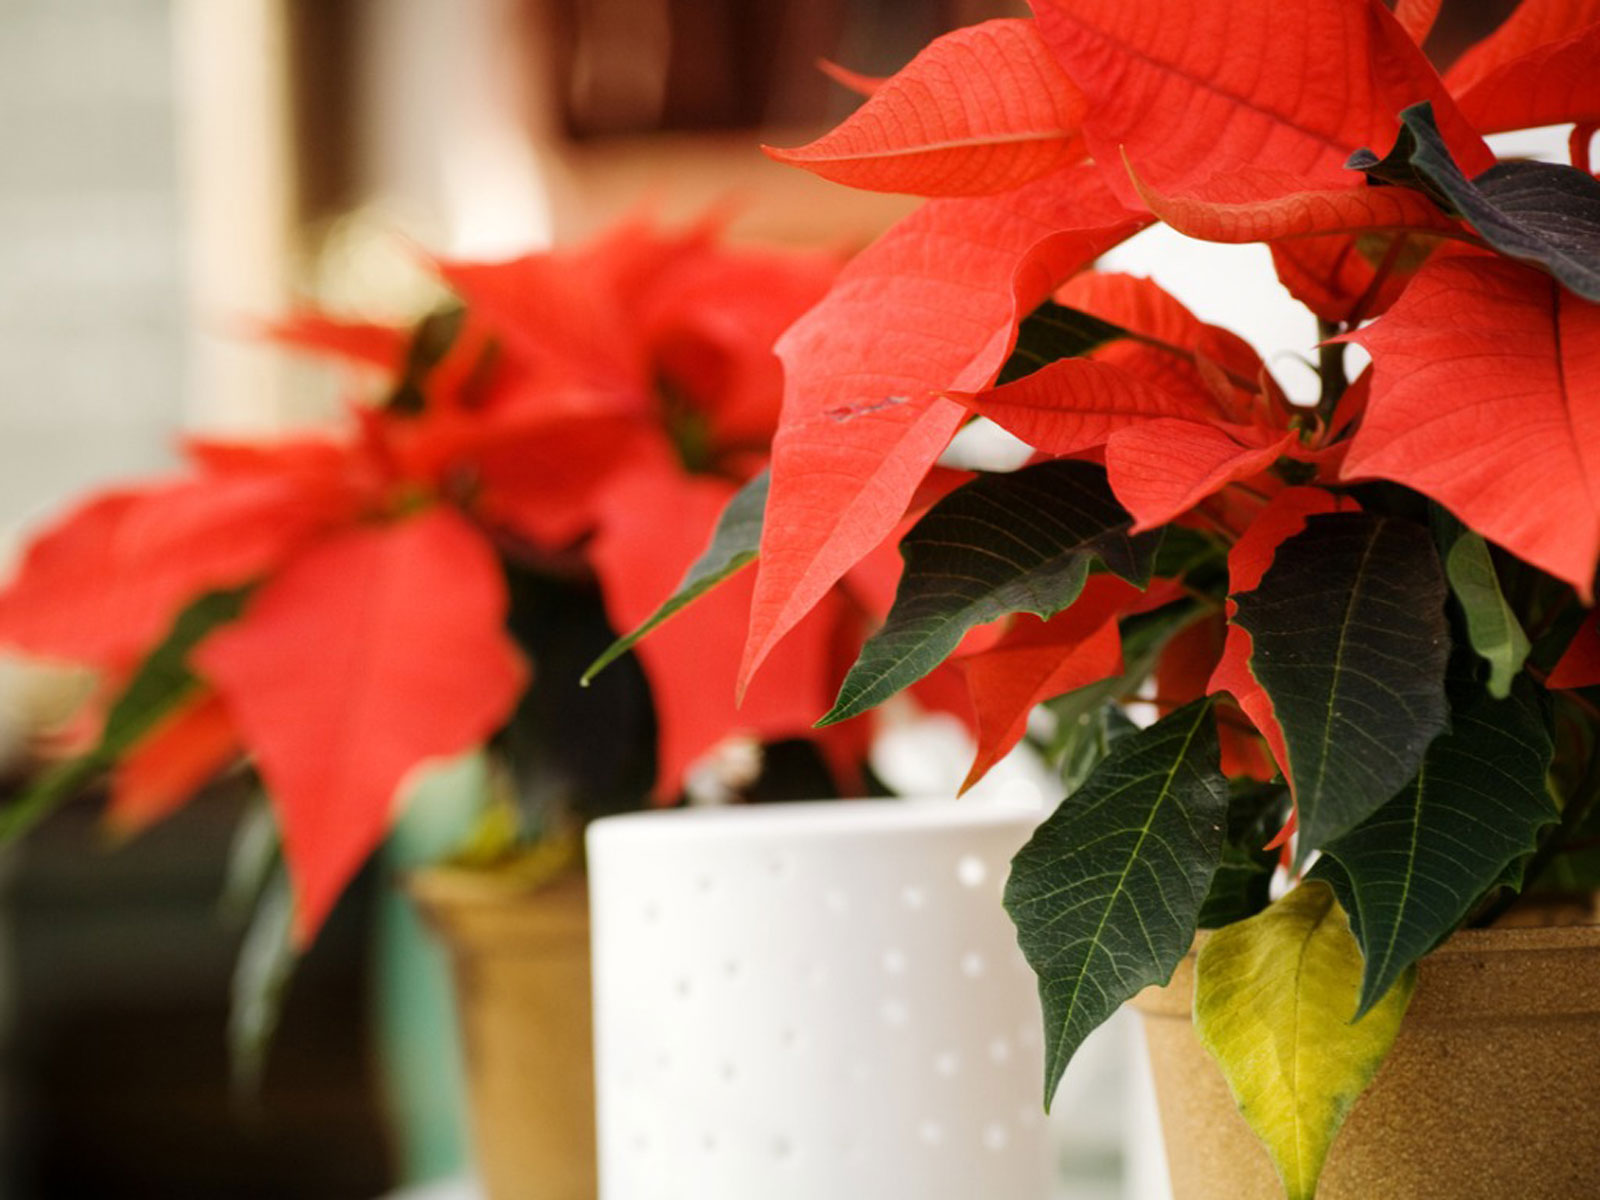 After Christmas Poinsettia Care How To Care For A Poinsettia After Christmas